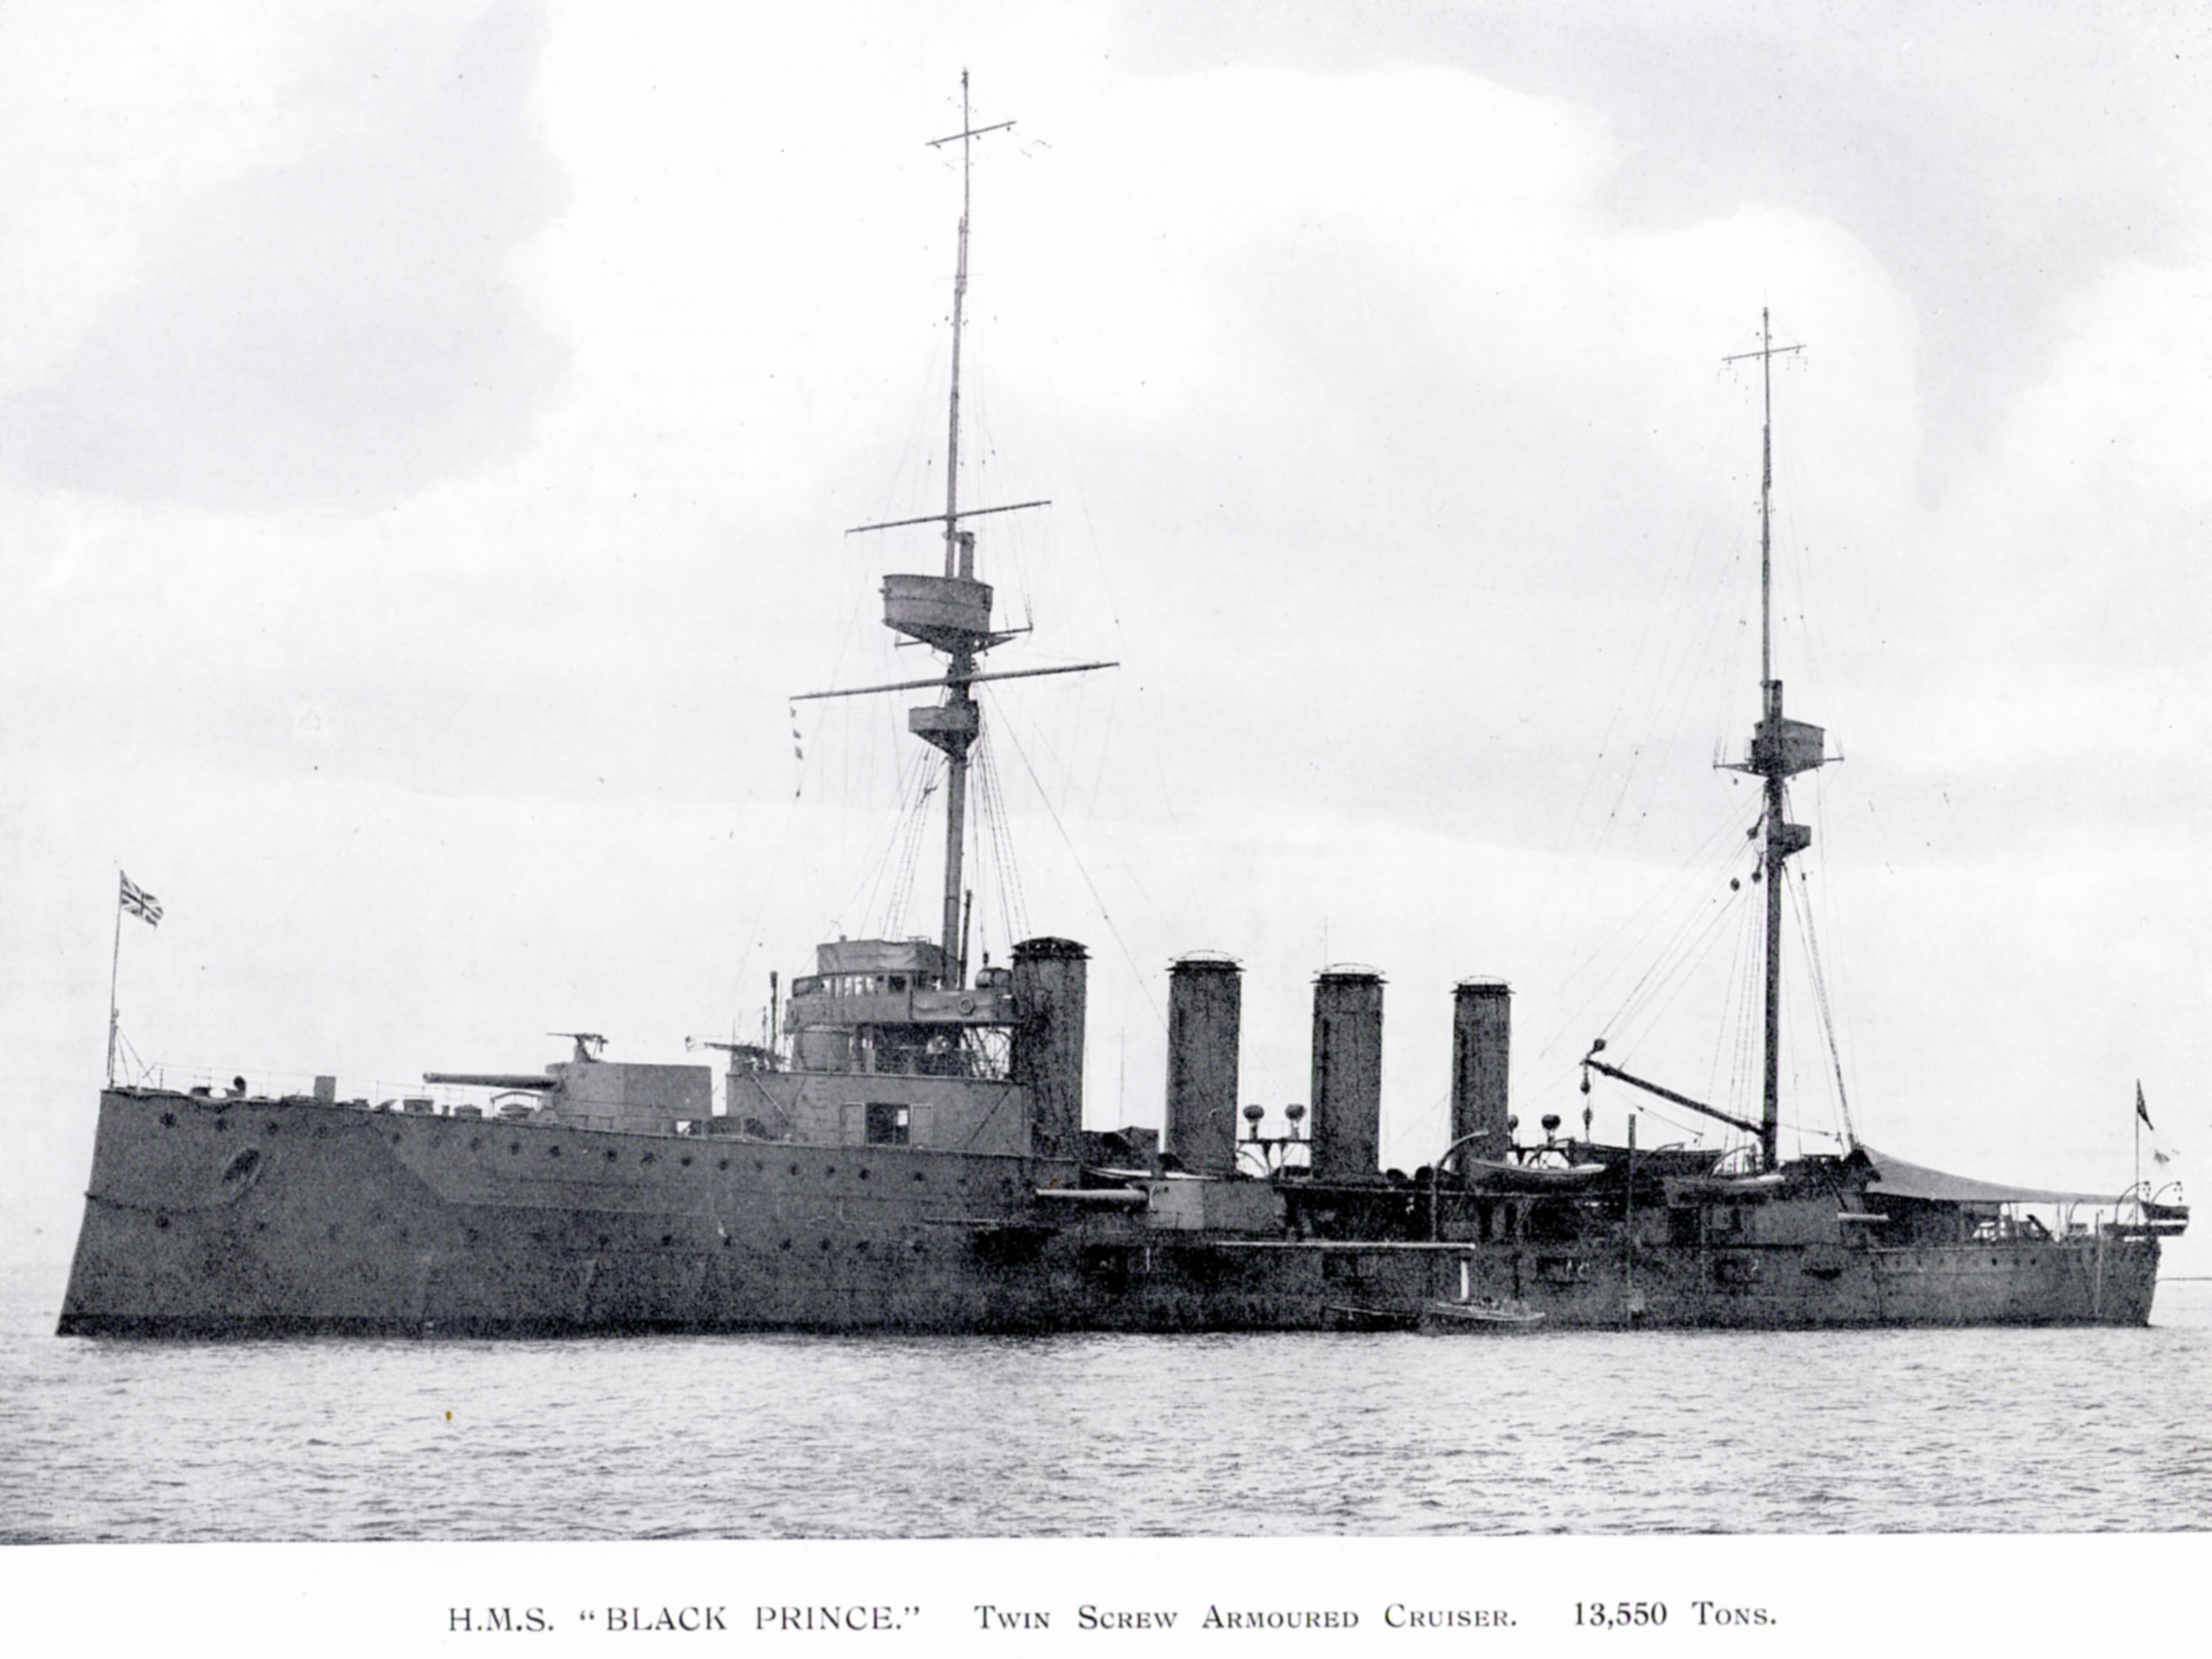 http://www.militarian.com/attachments/hms-black-prince-8-1904-1916-ian-jpg.6806/